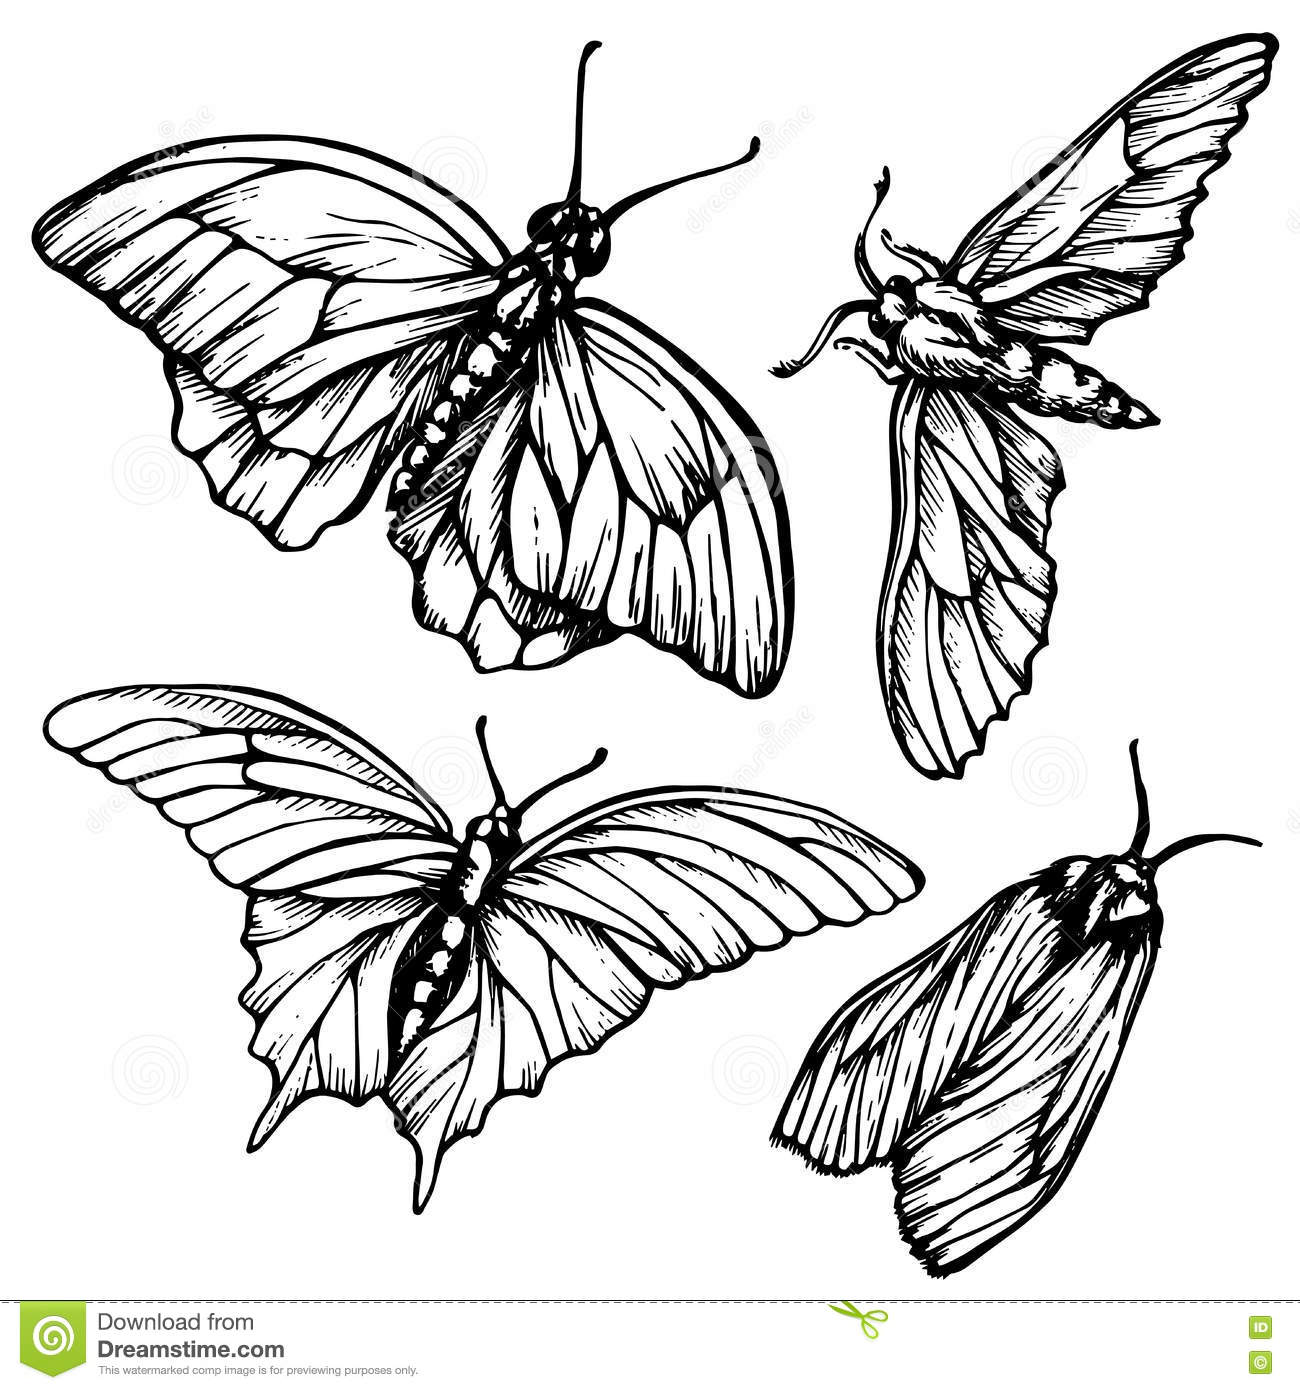 Monochrome Black And White Seamless Background With Butterflies Elegant Elements For Design Can